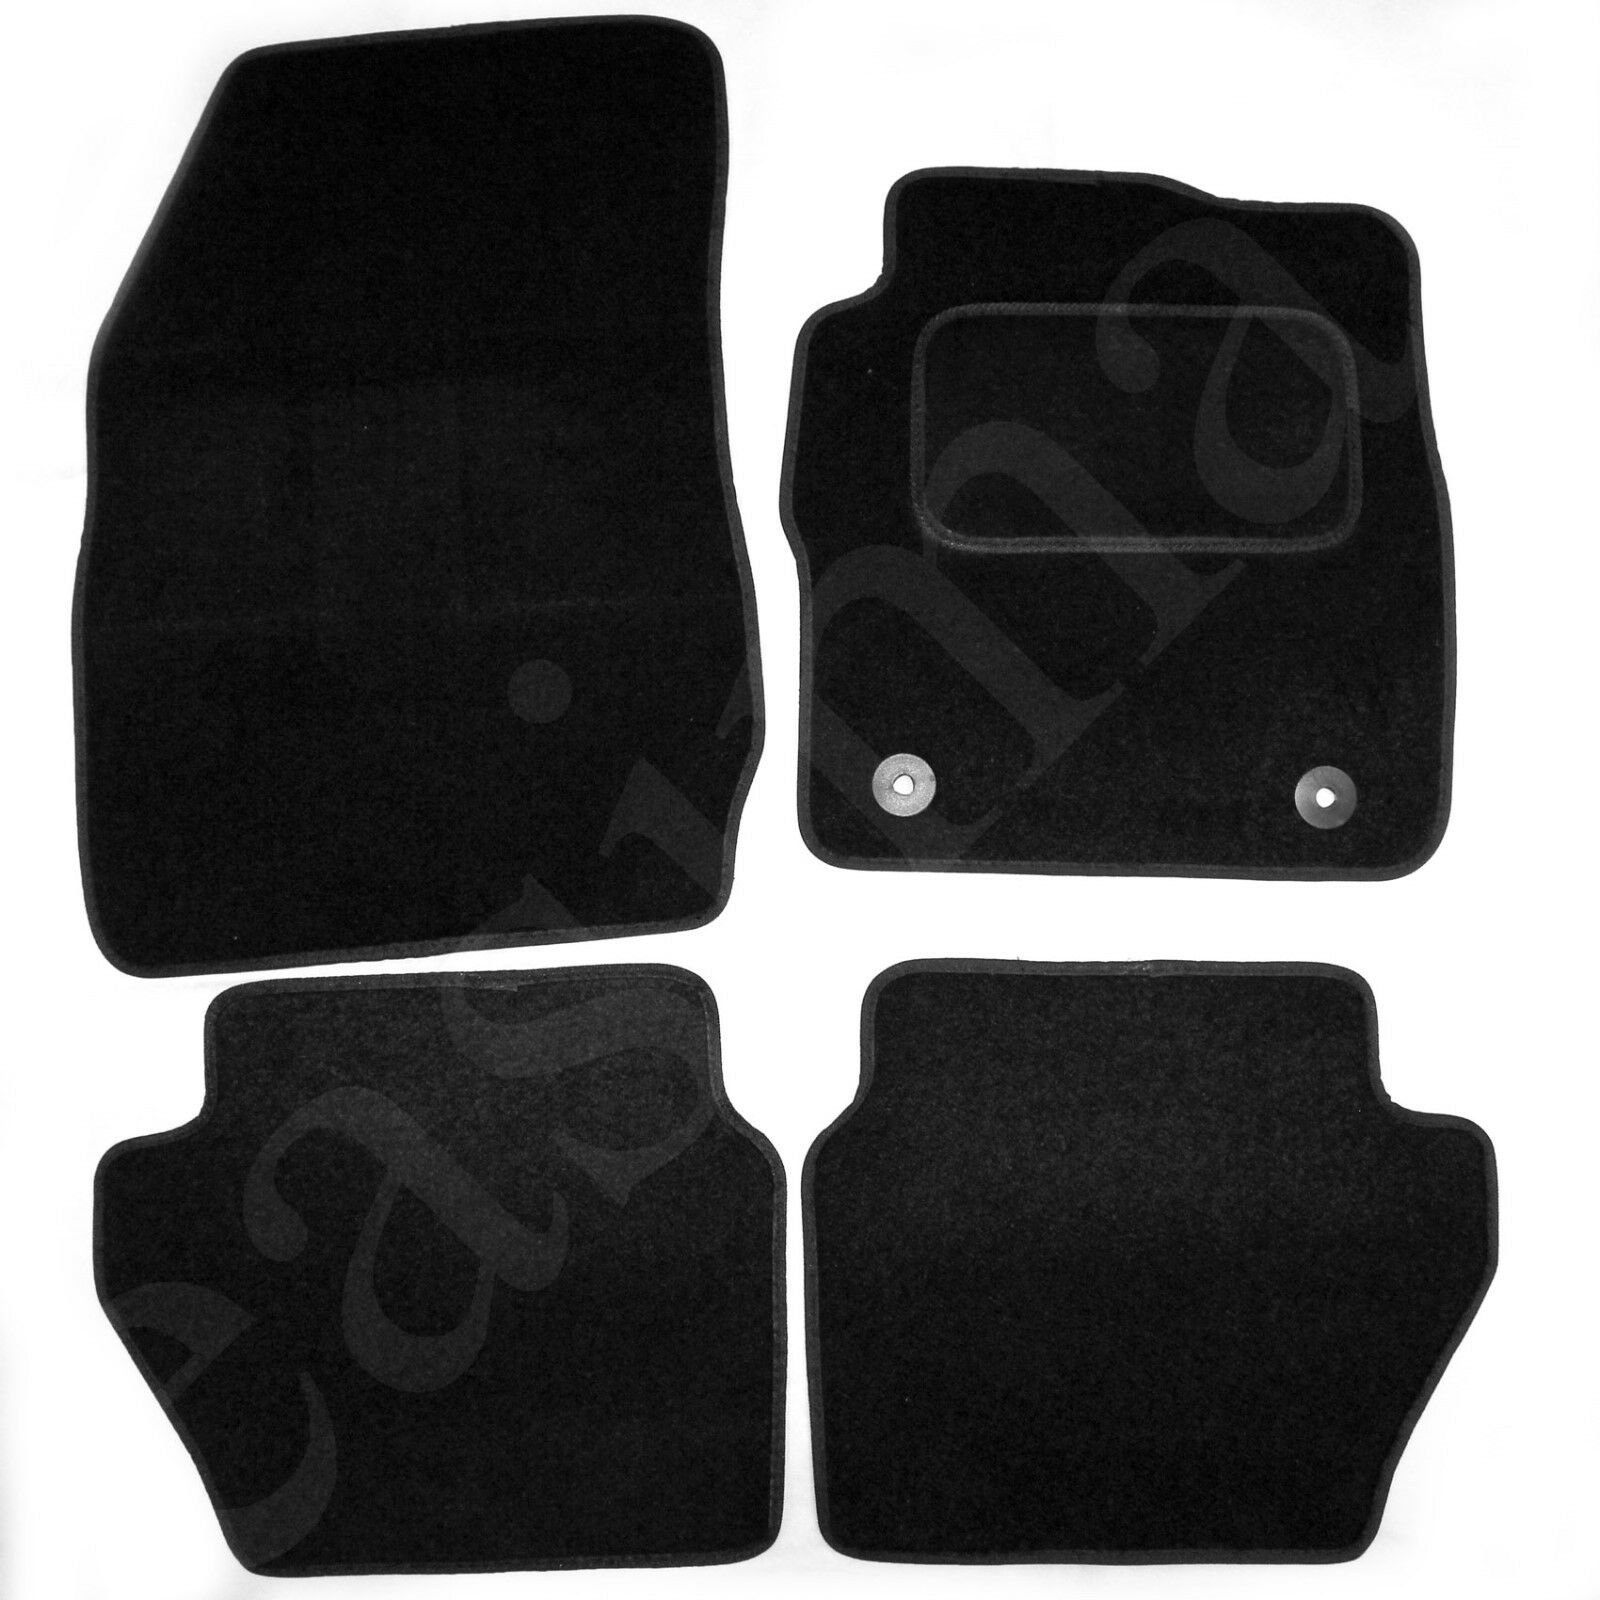 Car Parts - Fits Ford Fiesta Mk7 2011-2017 Tailored Carpet Car Mats Black 4pc Floor Mat Set